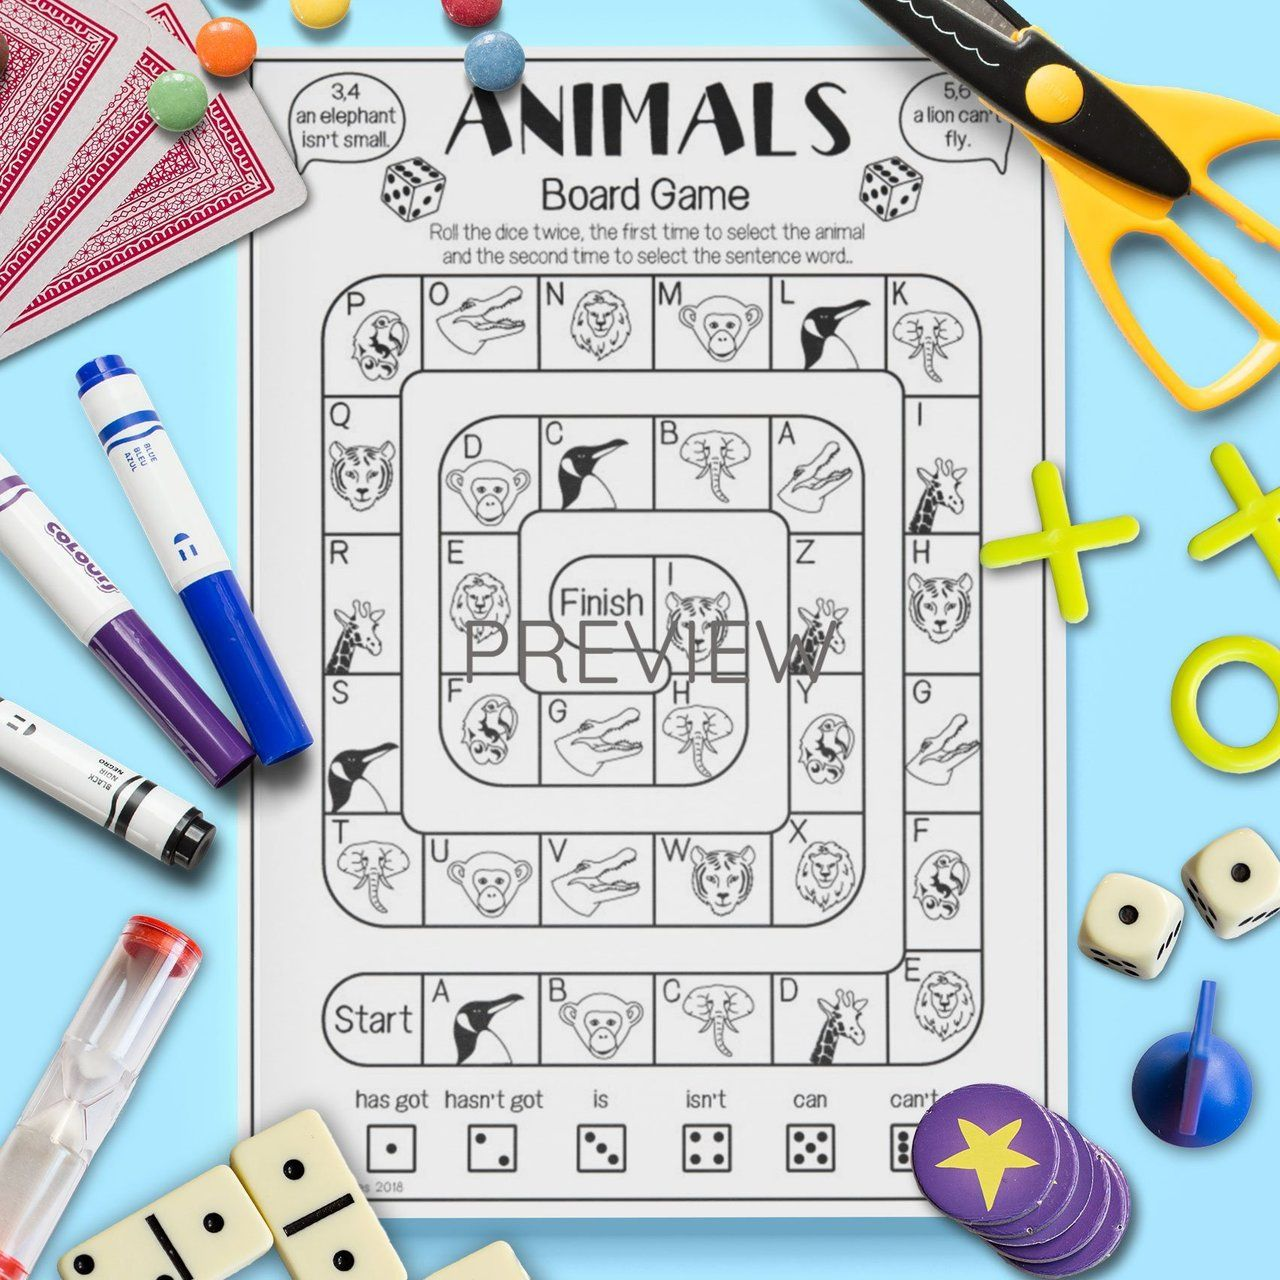 Wild Animal Sentence Board Game